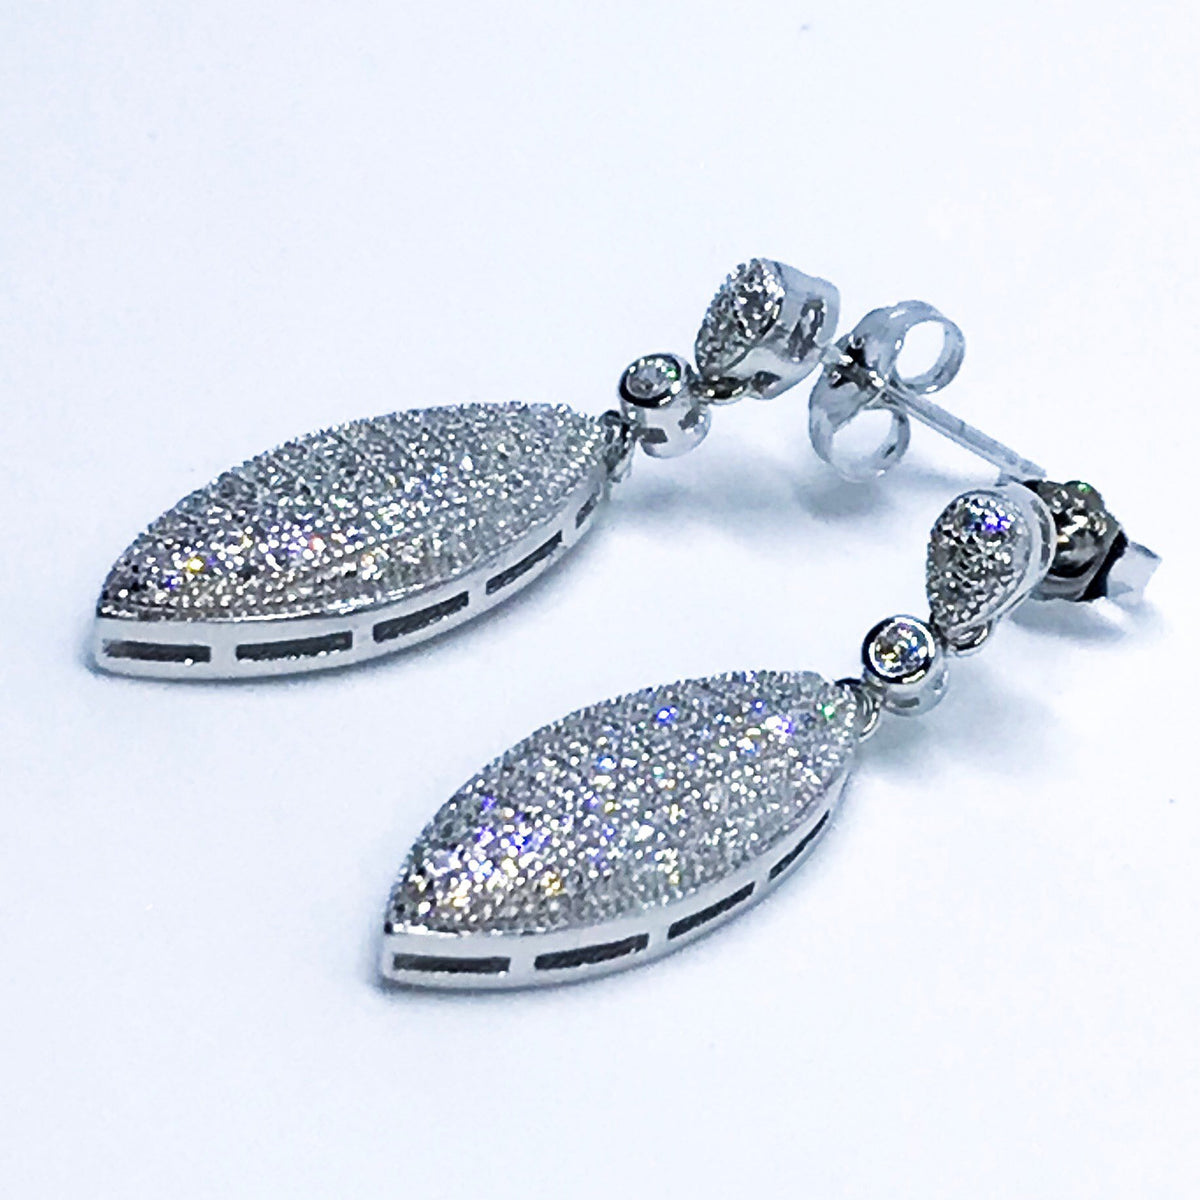 14k White Gold on Sterling Silver Almond Shaped Dangling Earrings - 3 Royal Dazzy